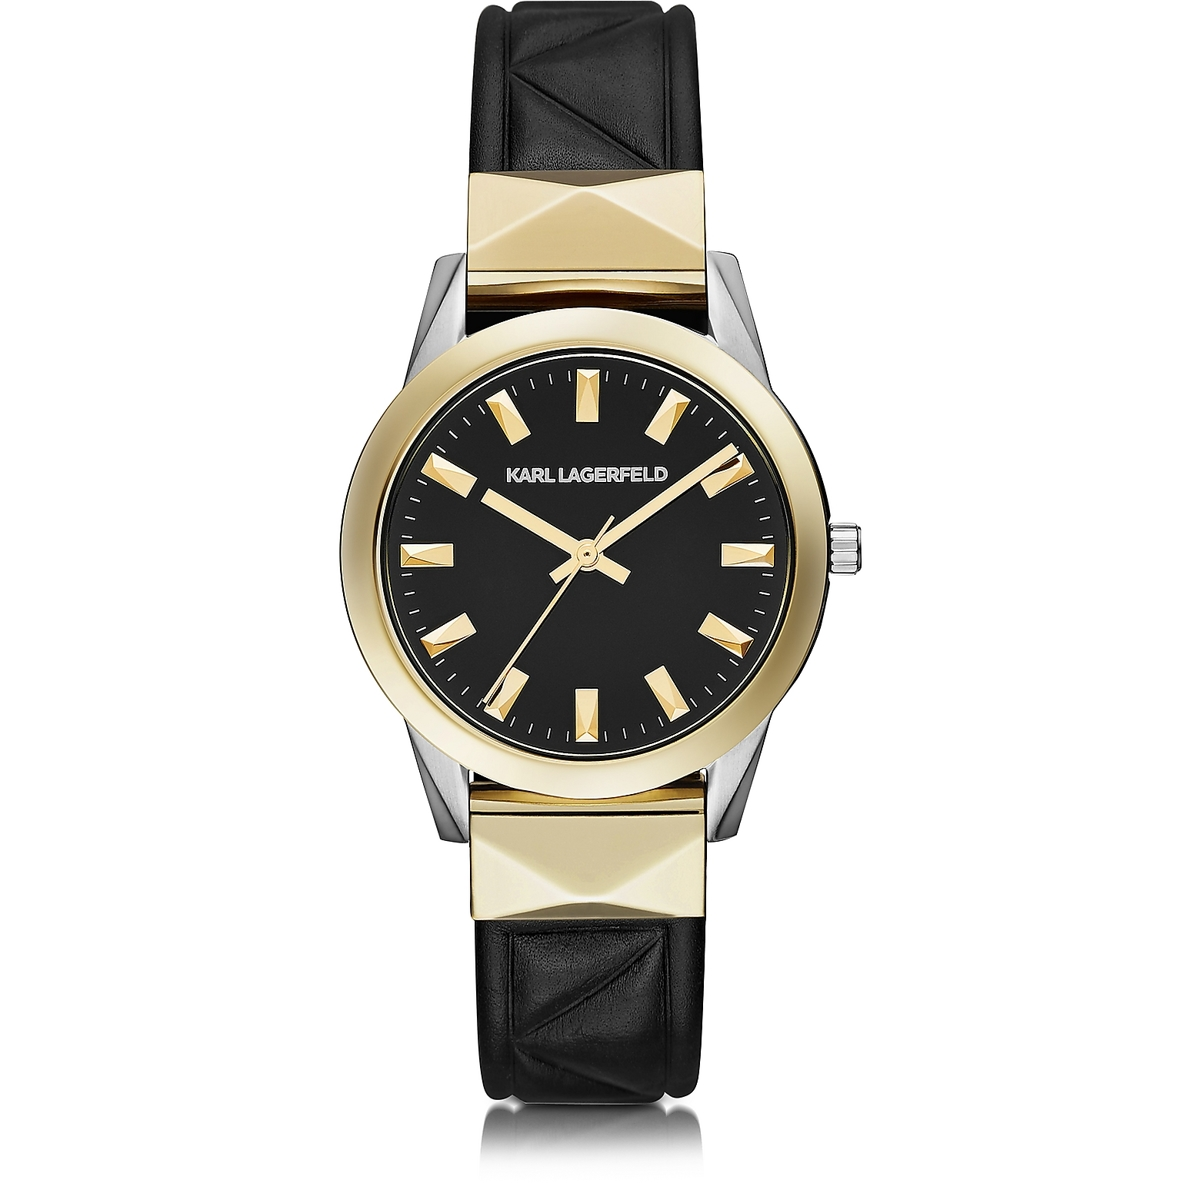 Karl Lagerfeld Labelle Stud Classic Black and Gold Women's Watch (large view)